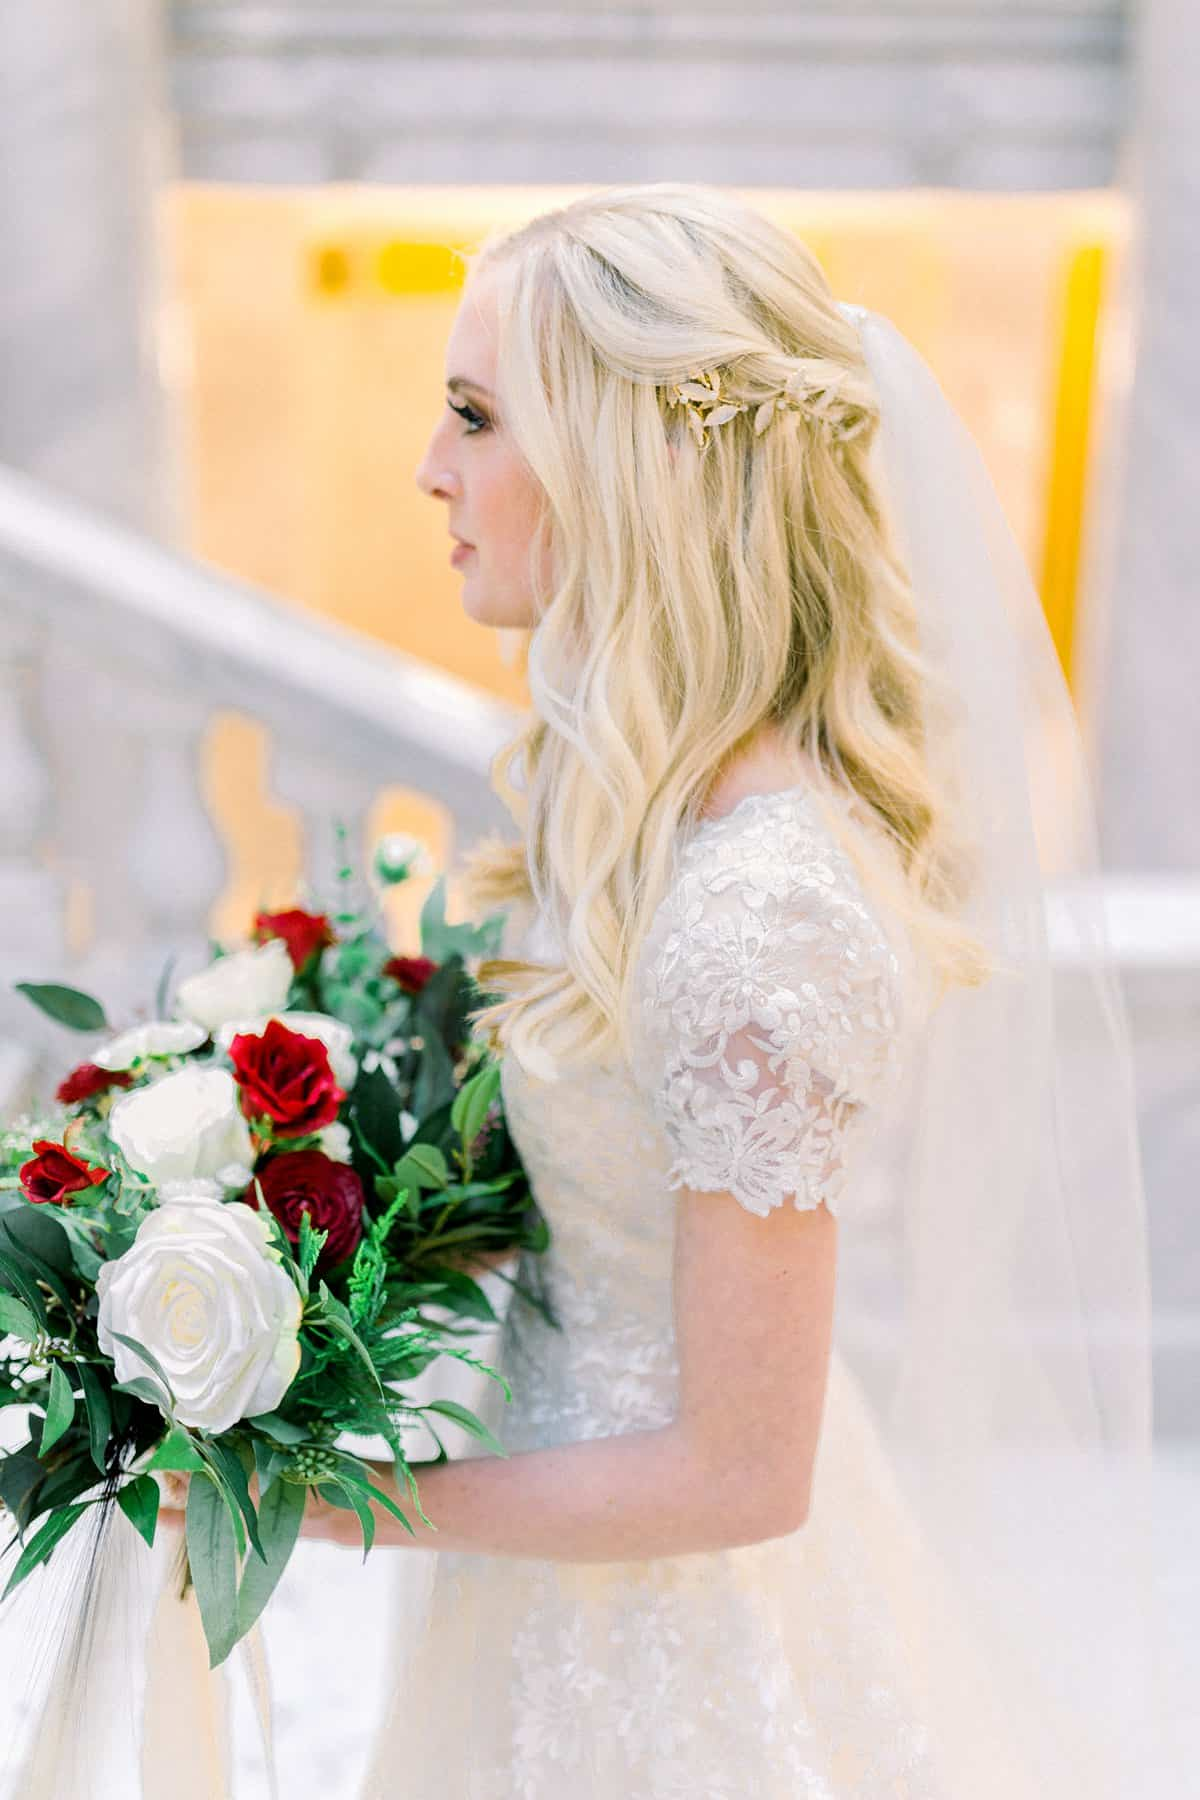 Modest lace wedding dress, bride long hairstyle, red and white wedding flowers bouquet